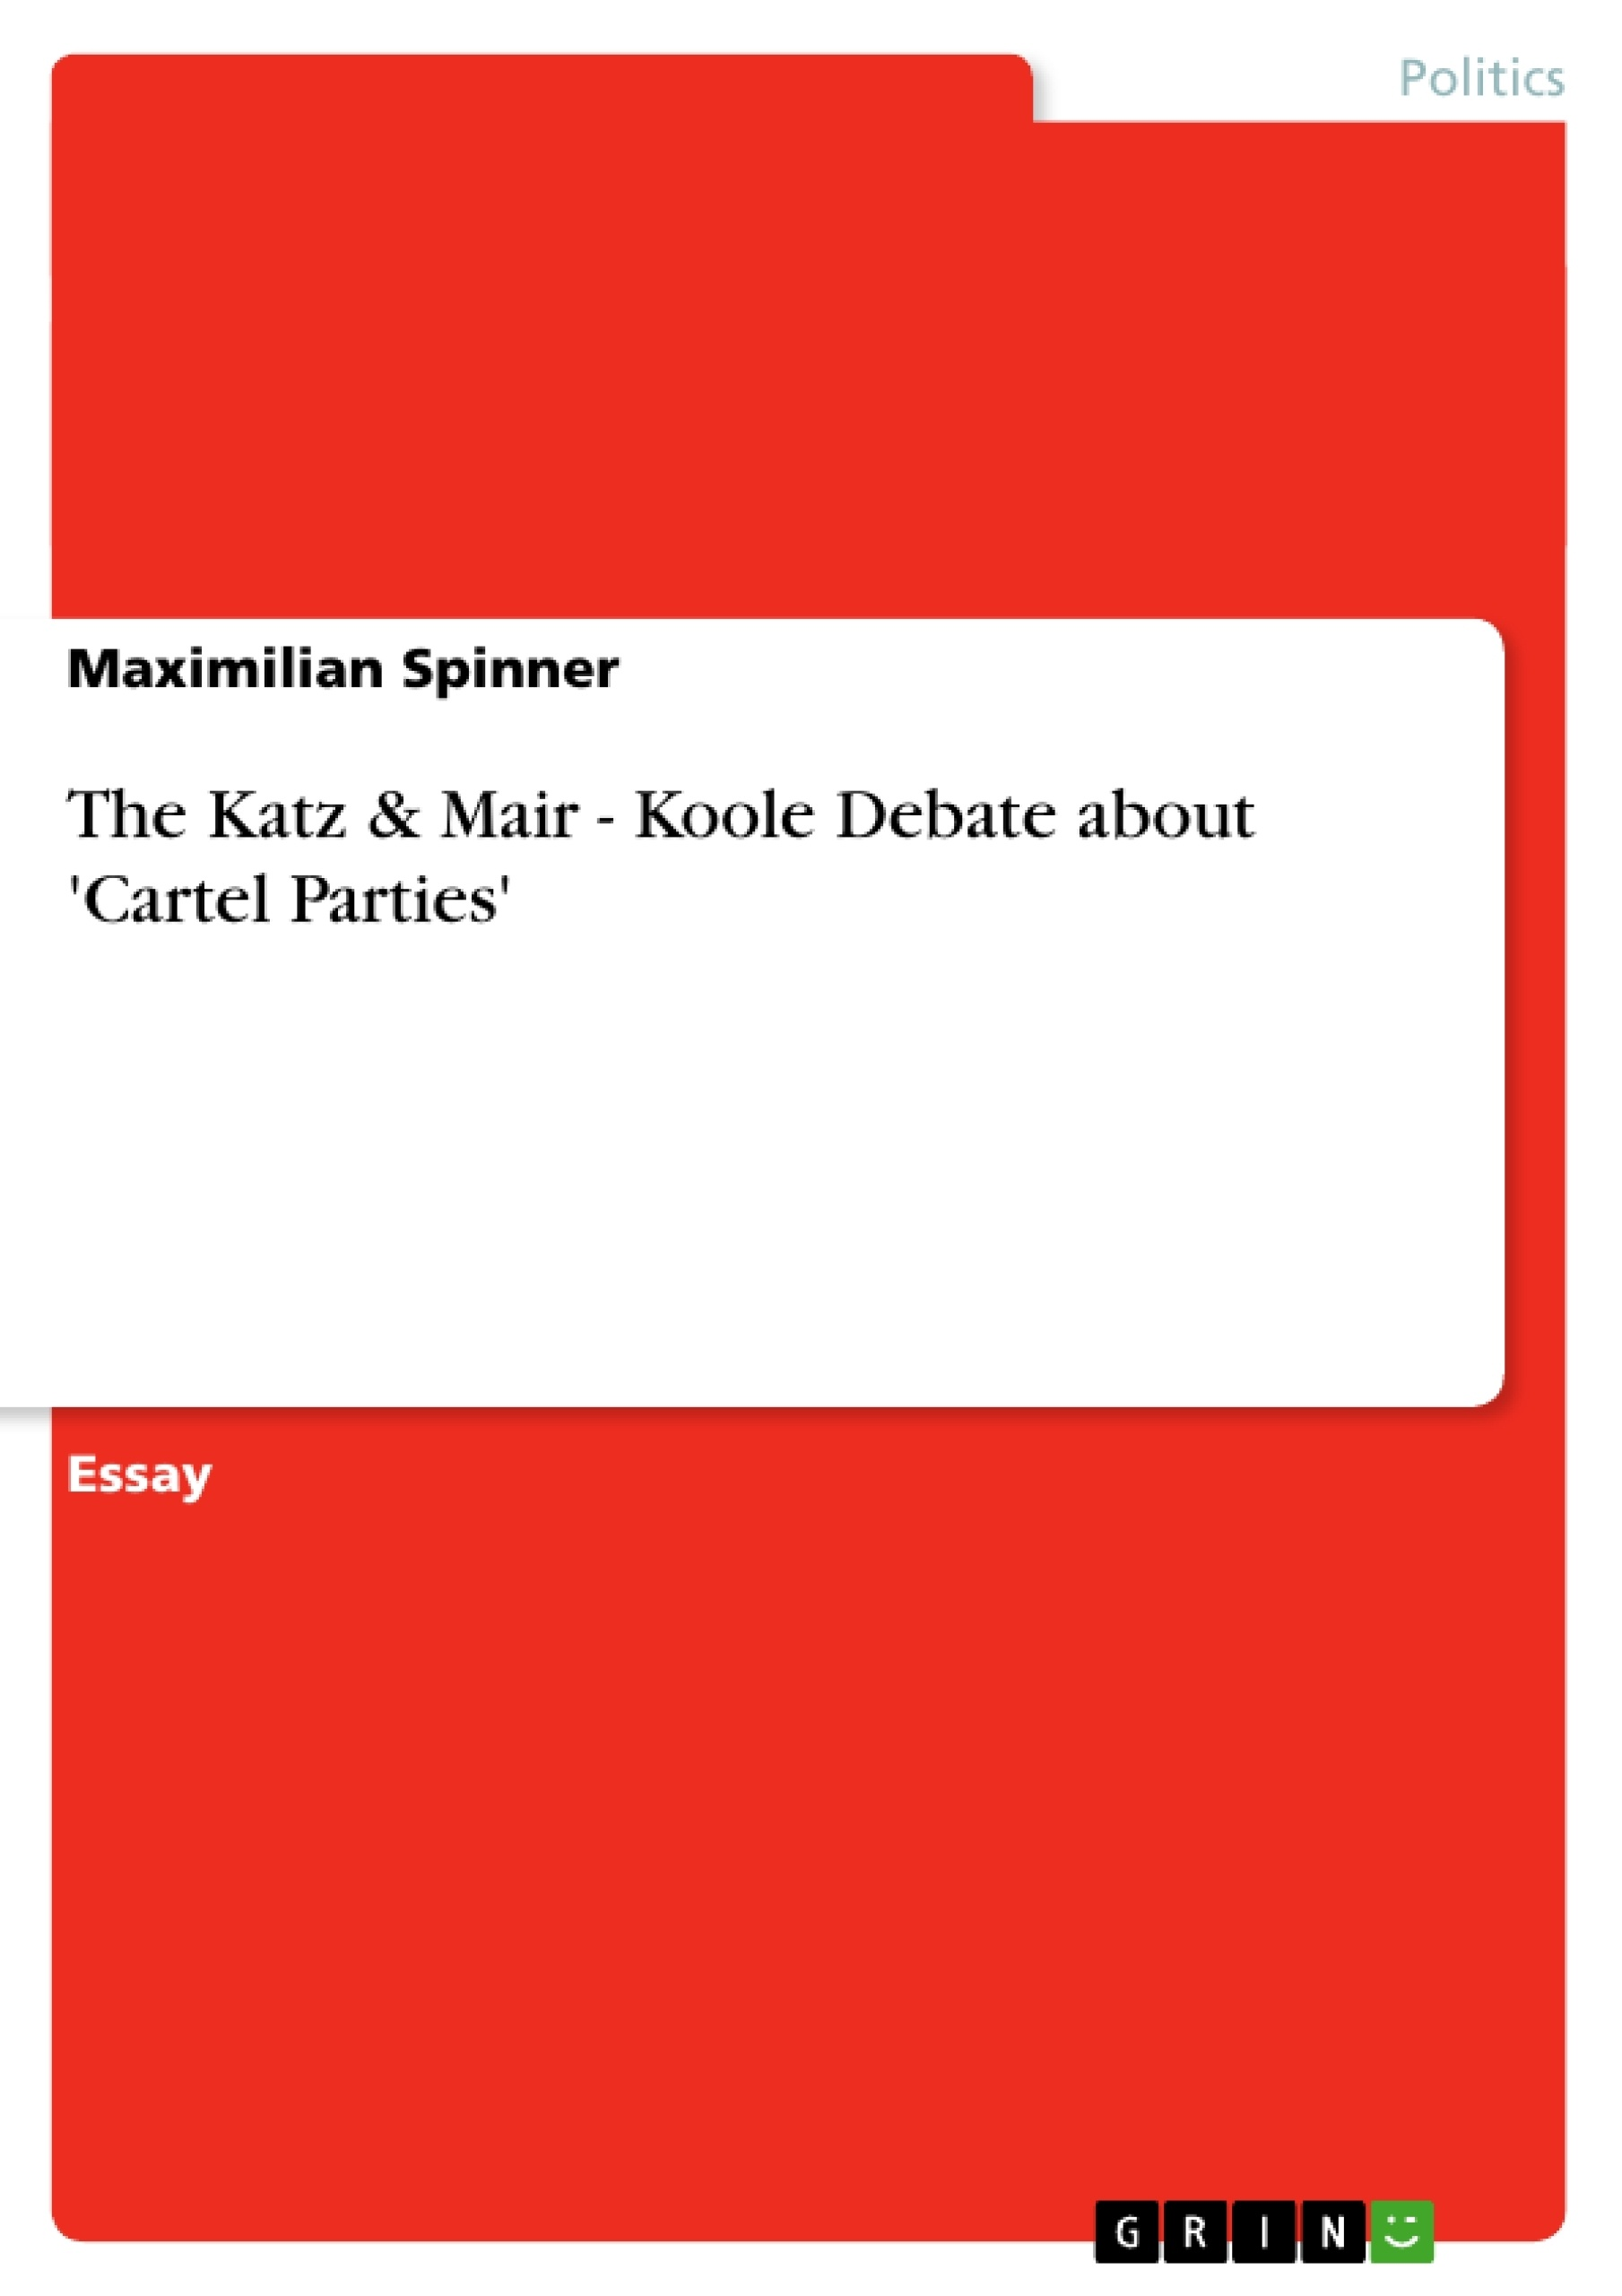 Title: The Katz & Mair - Koole Debate about 'Cartel Parties'